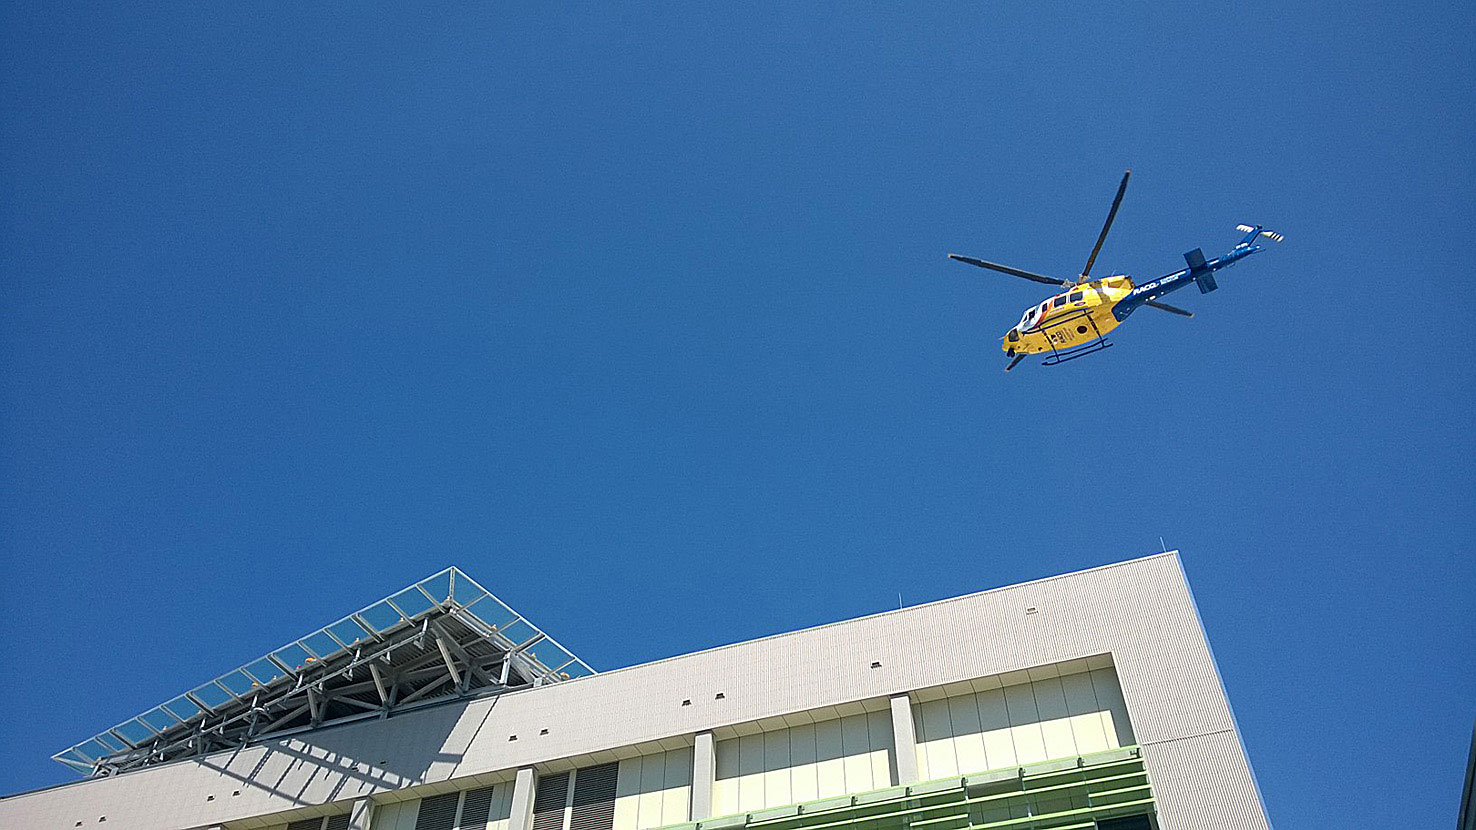 Rooftop Helipad For Rockhampton Hospital, Queensland, Australia